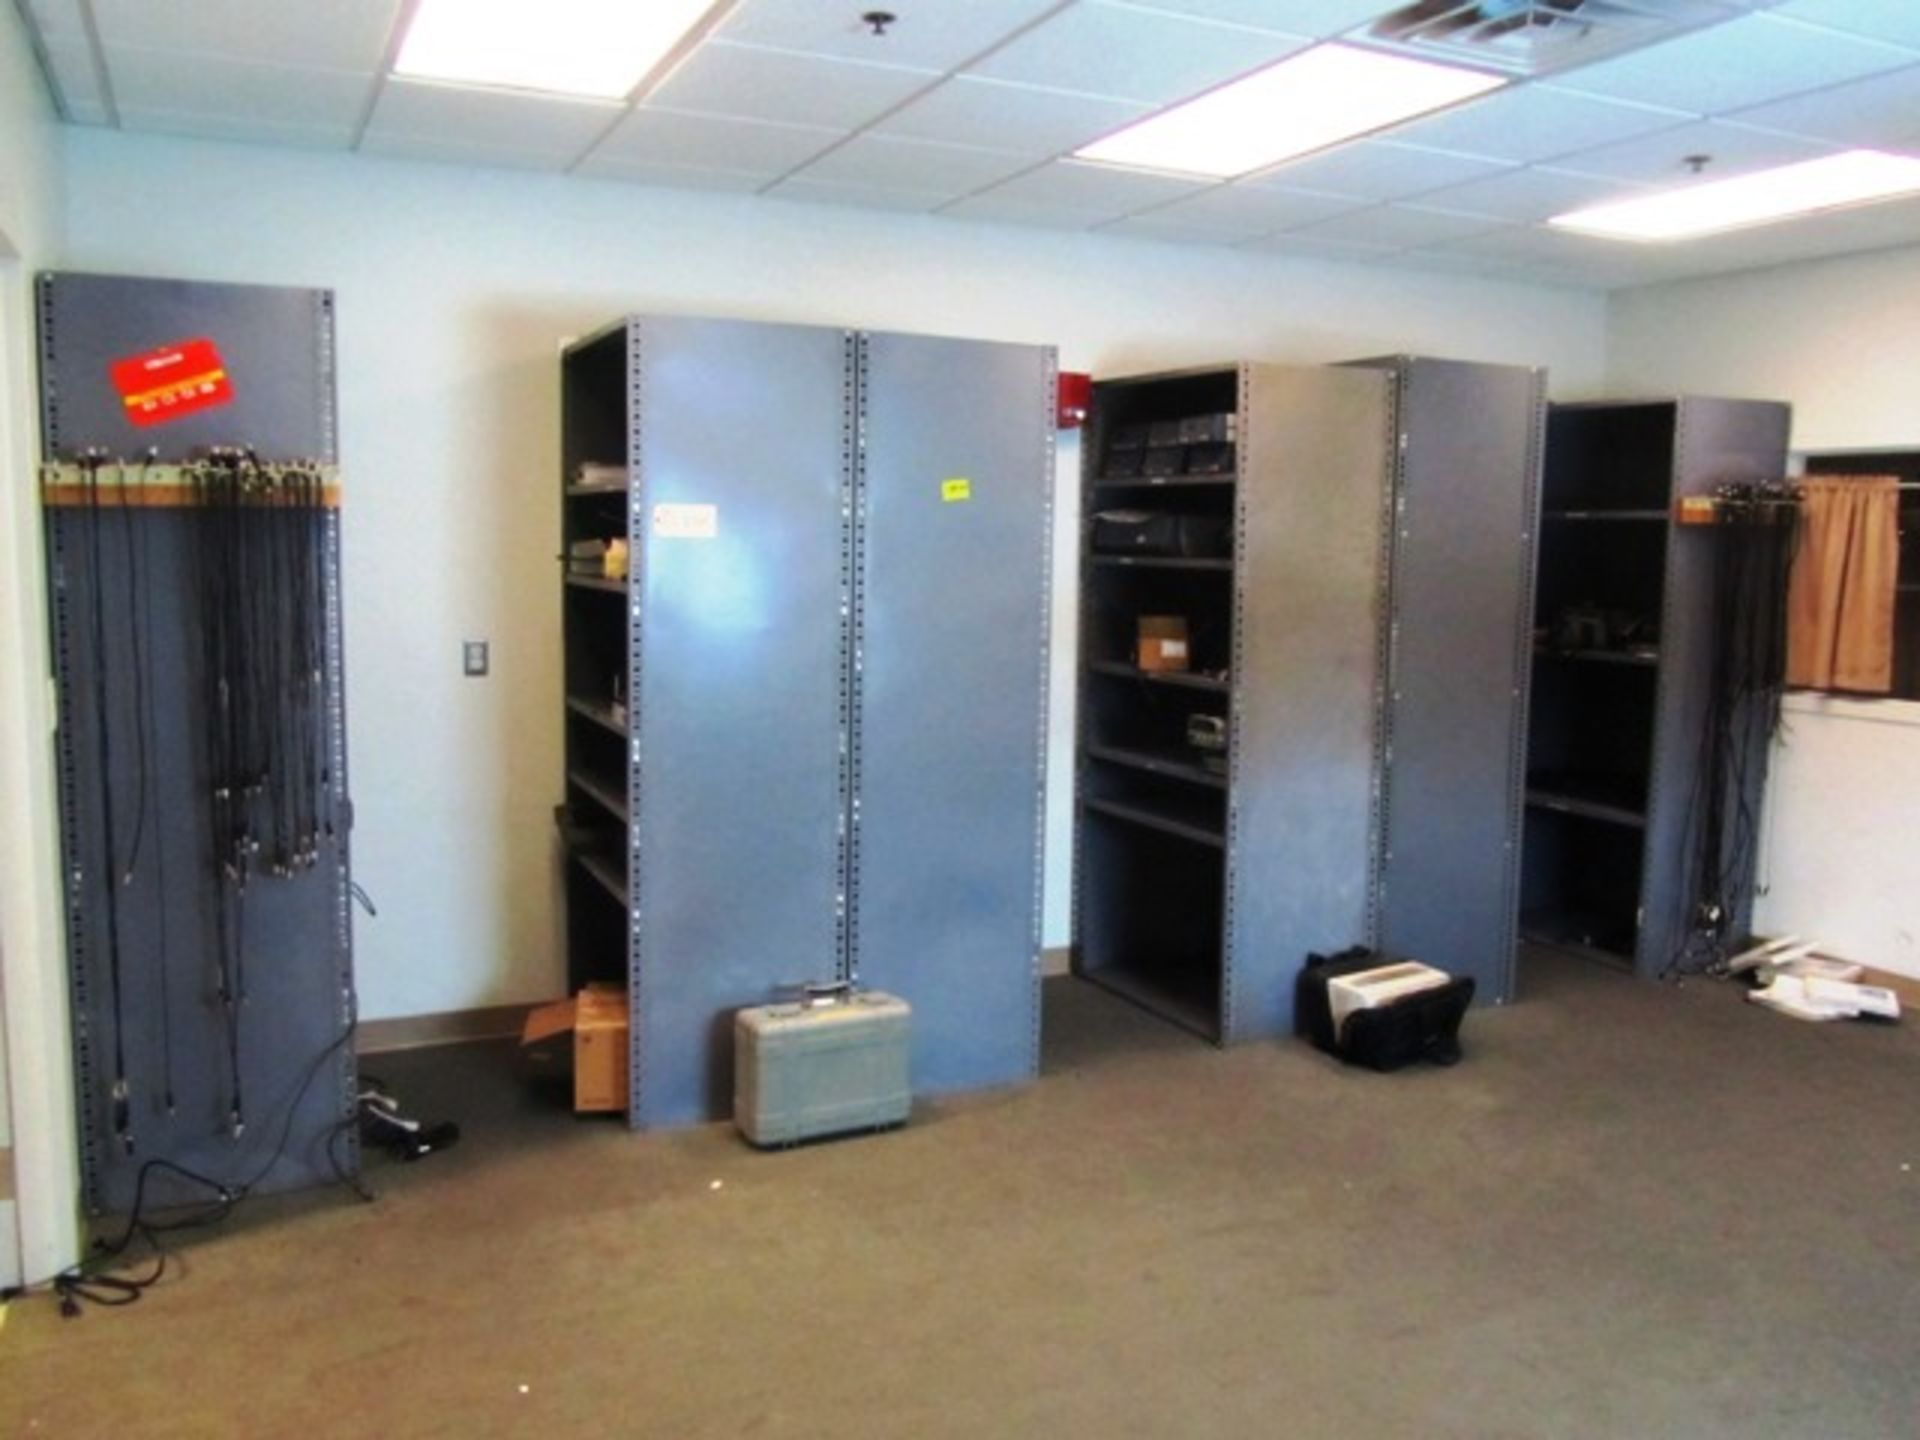 (6) Shelves with Lab Equipment